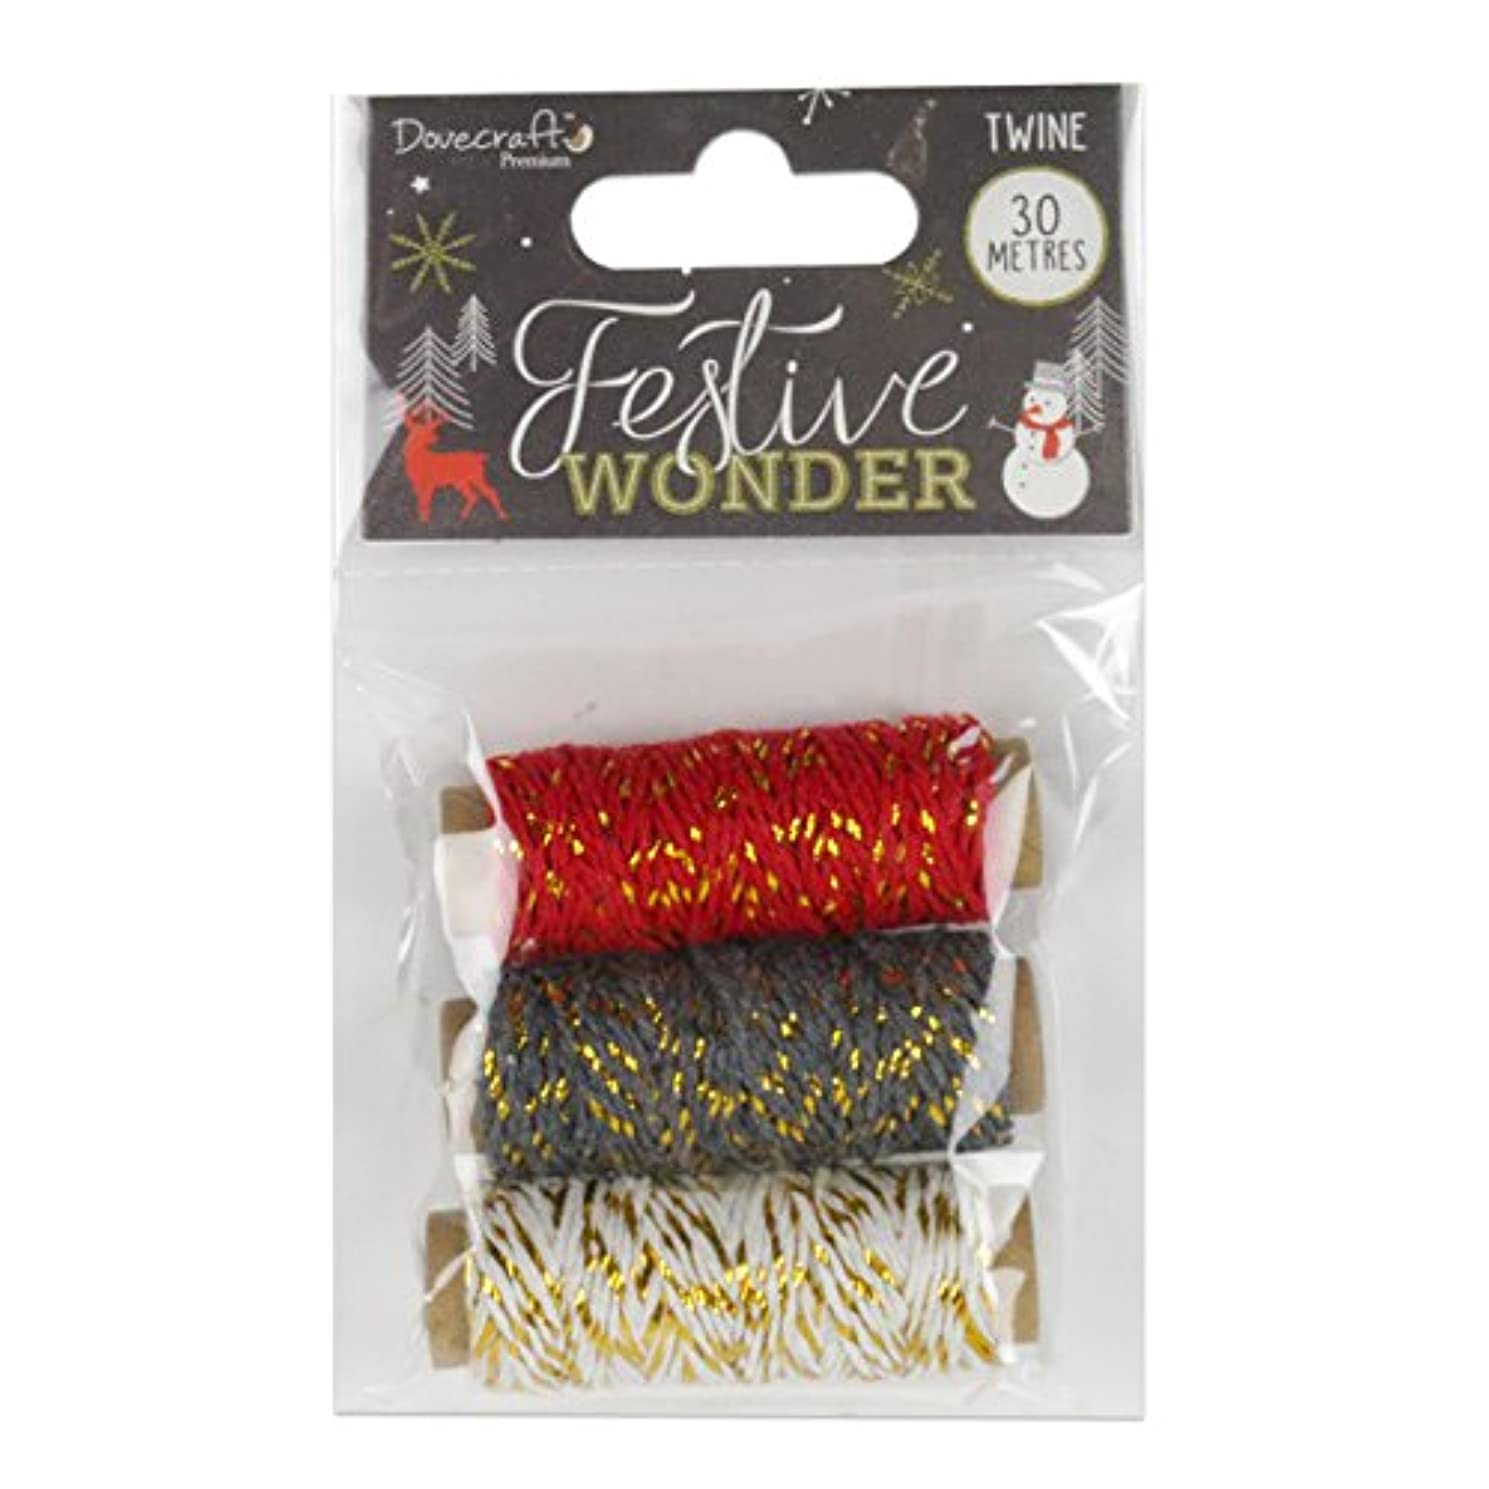 Dovecraft Christmas 2018 Premium Collection - Festive Wonder Twine